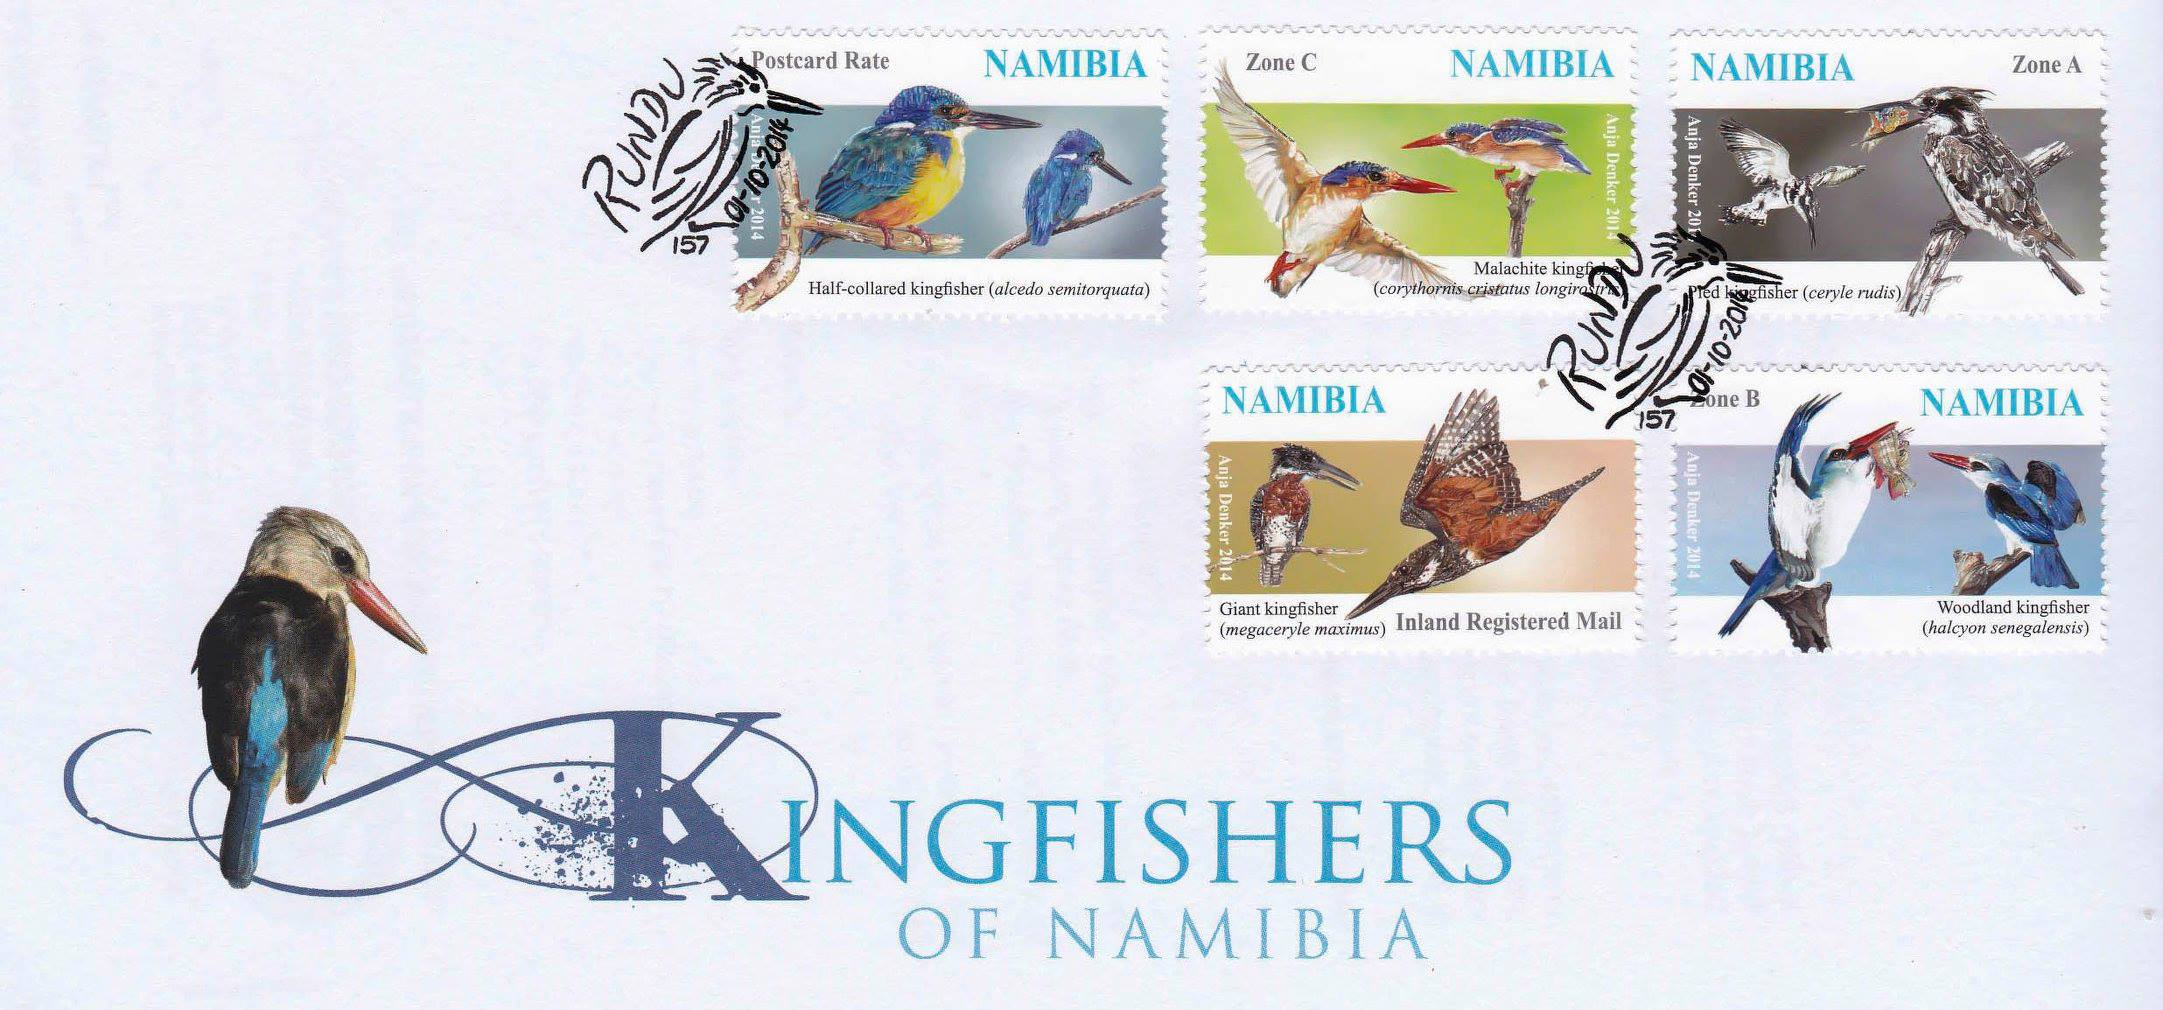 Latest postage stame issue - Kingfishers of Namibia. ©Anja Denker